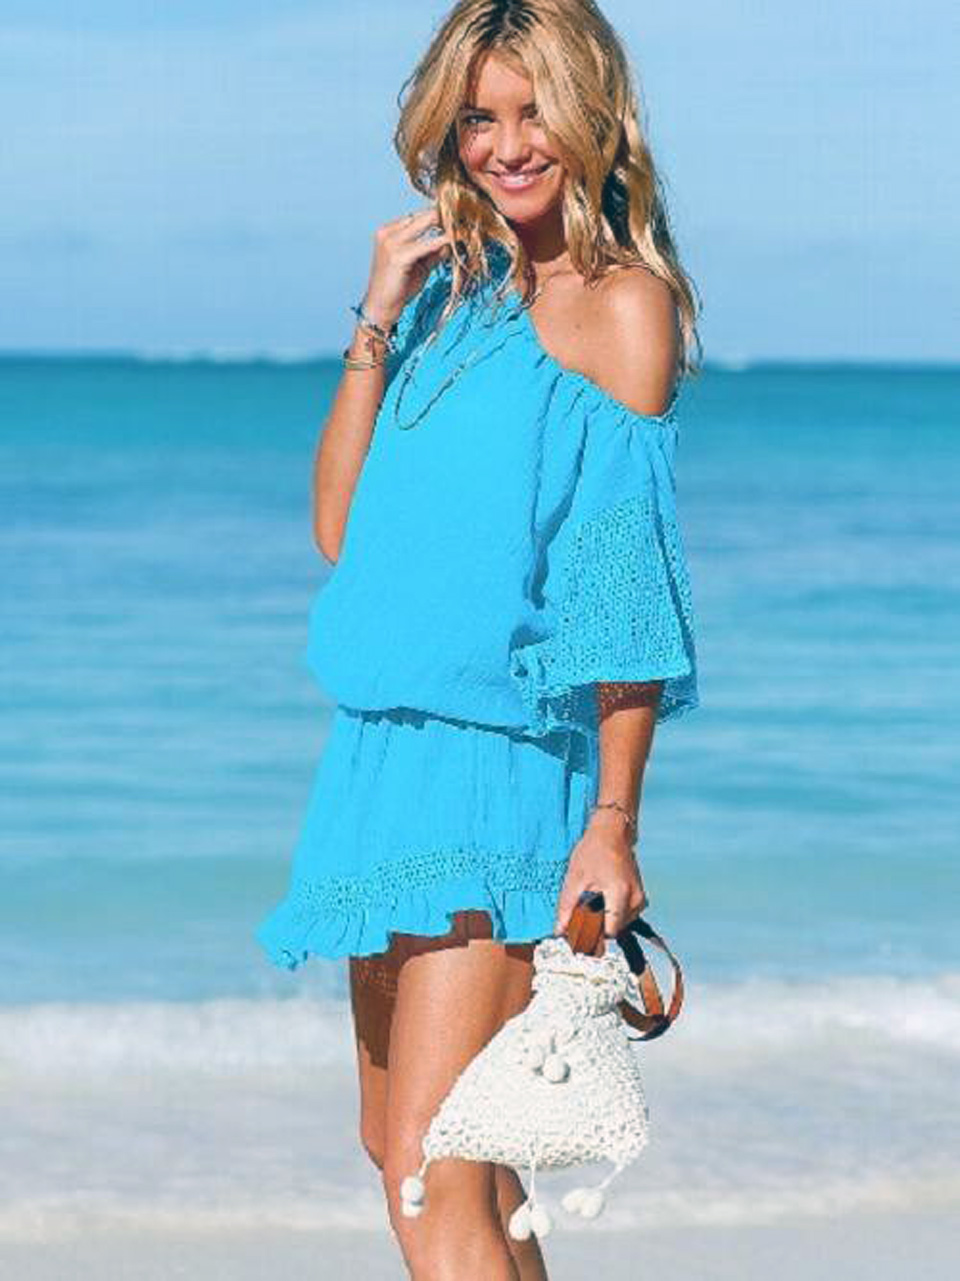 Beachy Clothing, Dresses + Sundresses. Created for all beach-loving women, all year round, FP Beach captures the spirit of coastal life in one carefree collection. These are dresses, pullovers, tops, and pants made for packing up and heading to the shore.